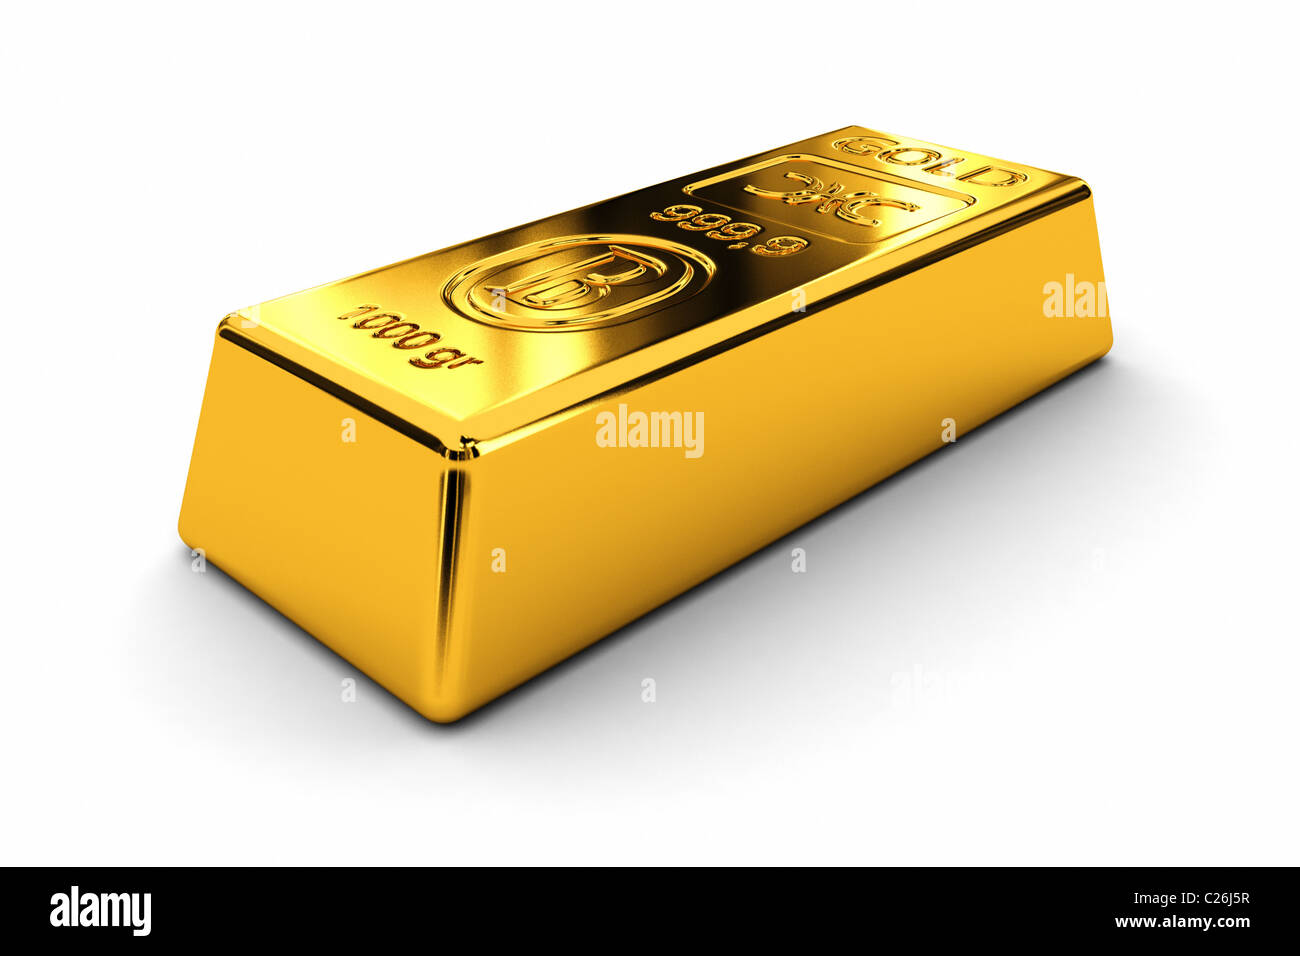 One gold bar - Stock Image